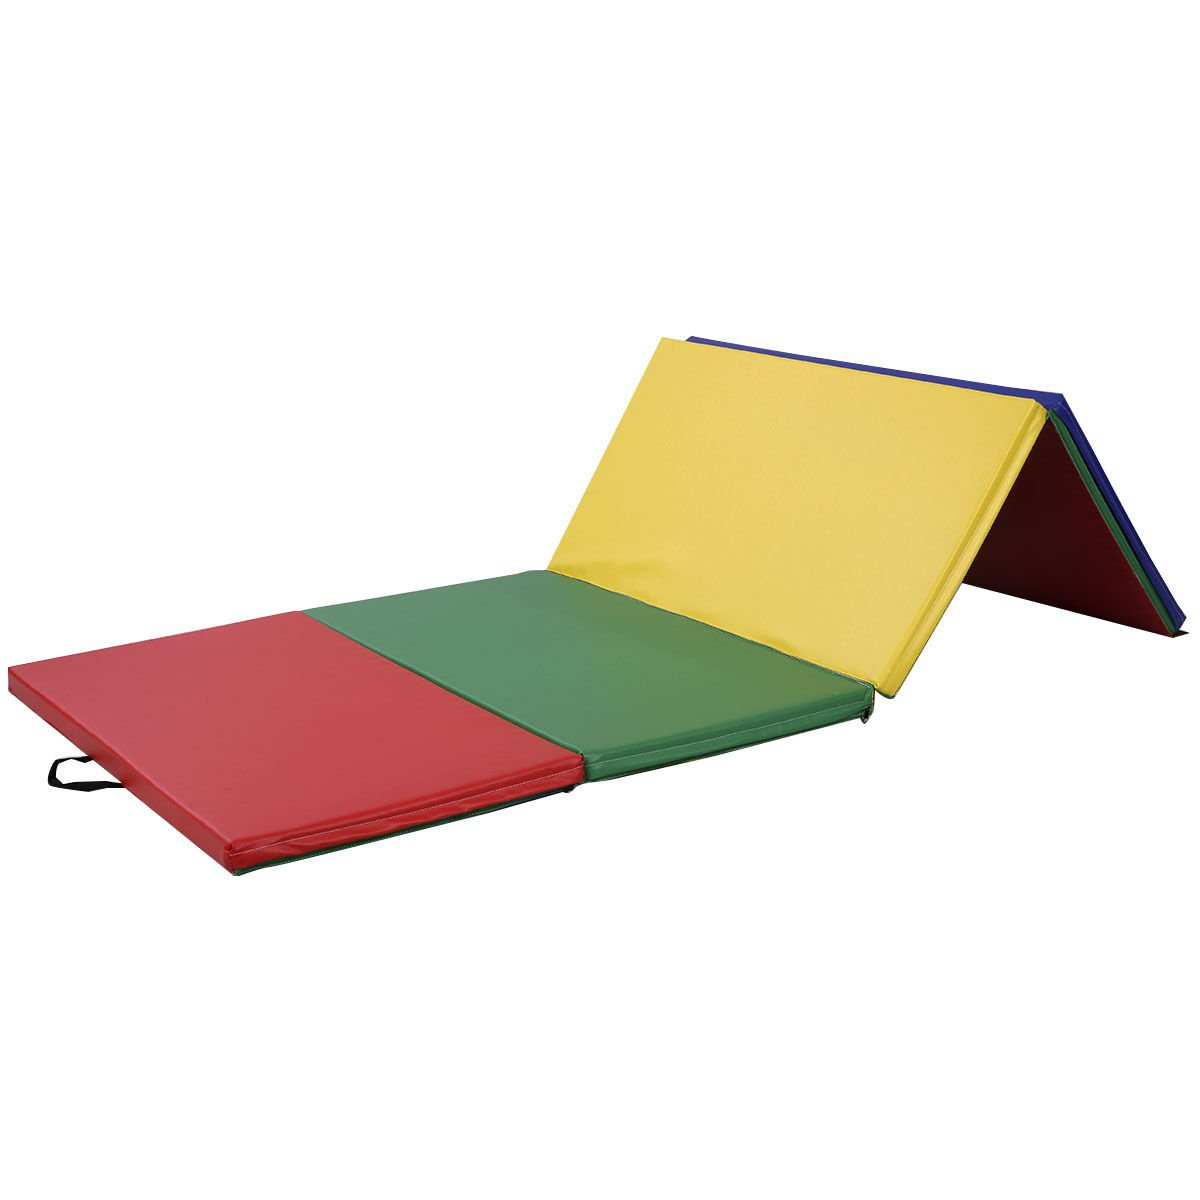 4'x10'x2'' Thick Folding Panel Gymnastics Mat Gym Fitness Exercise Multicolor